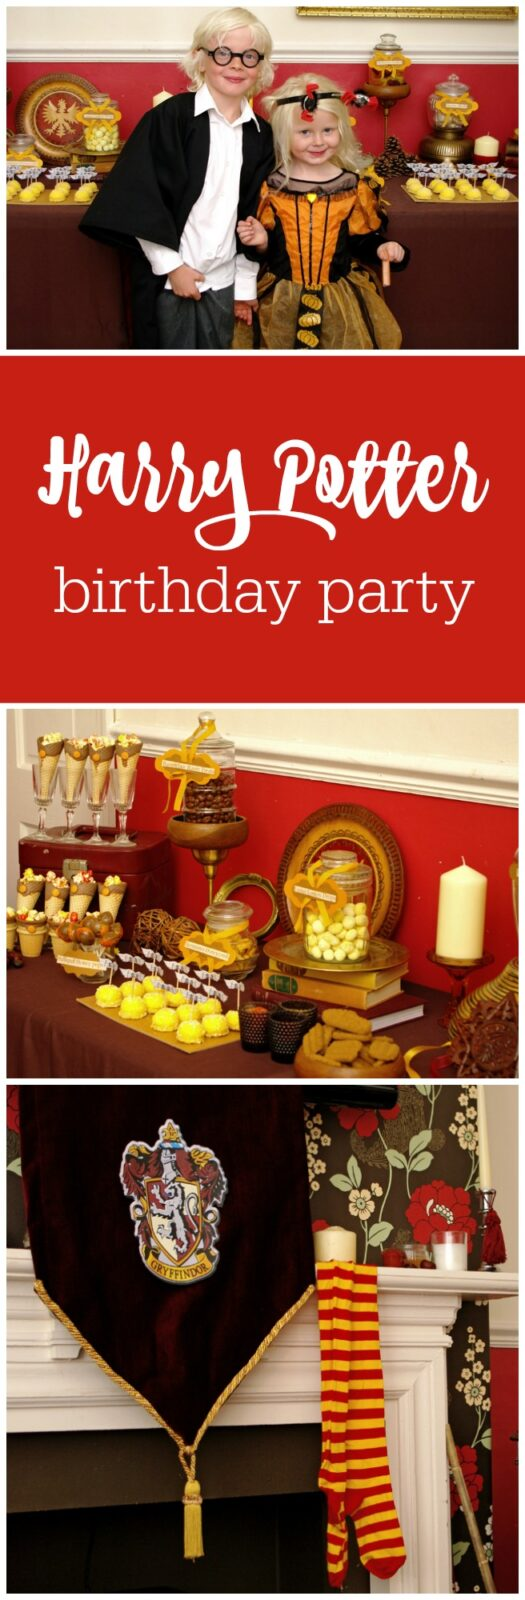 Guest Party: Happy Hogwarts Harry Potter Birthday Party for